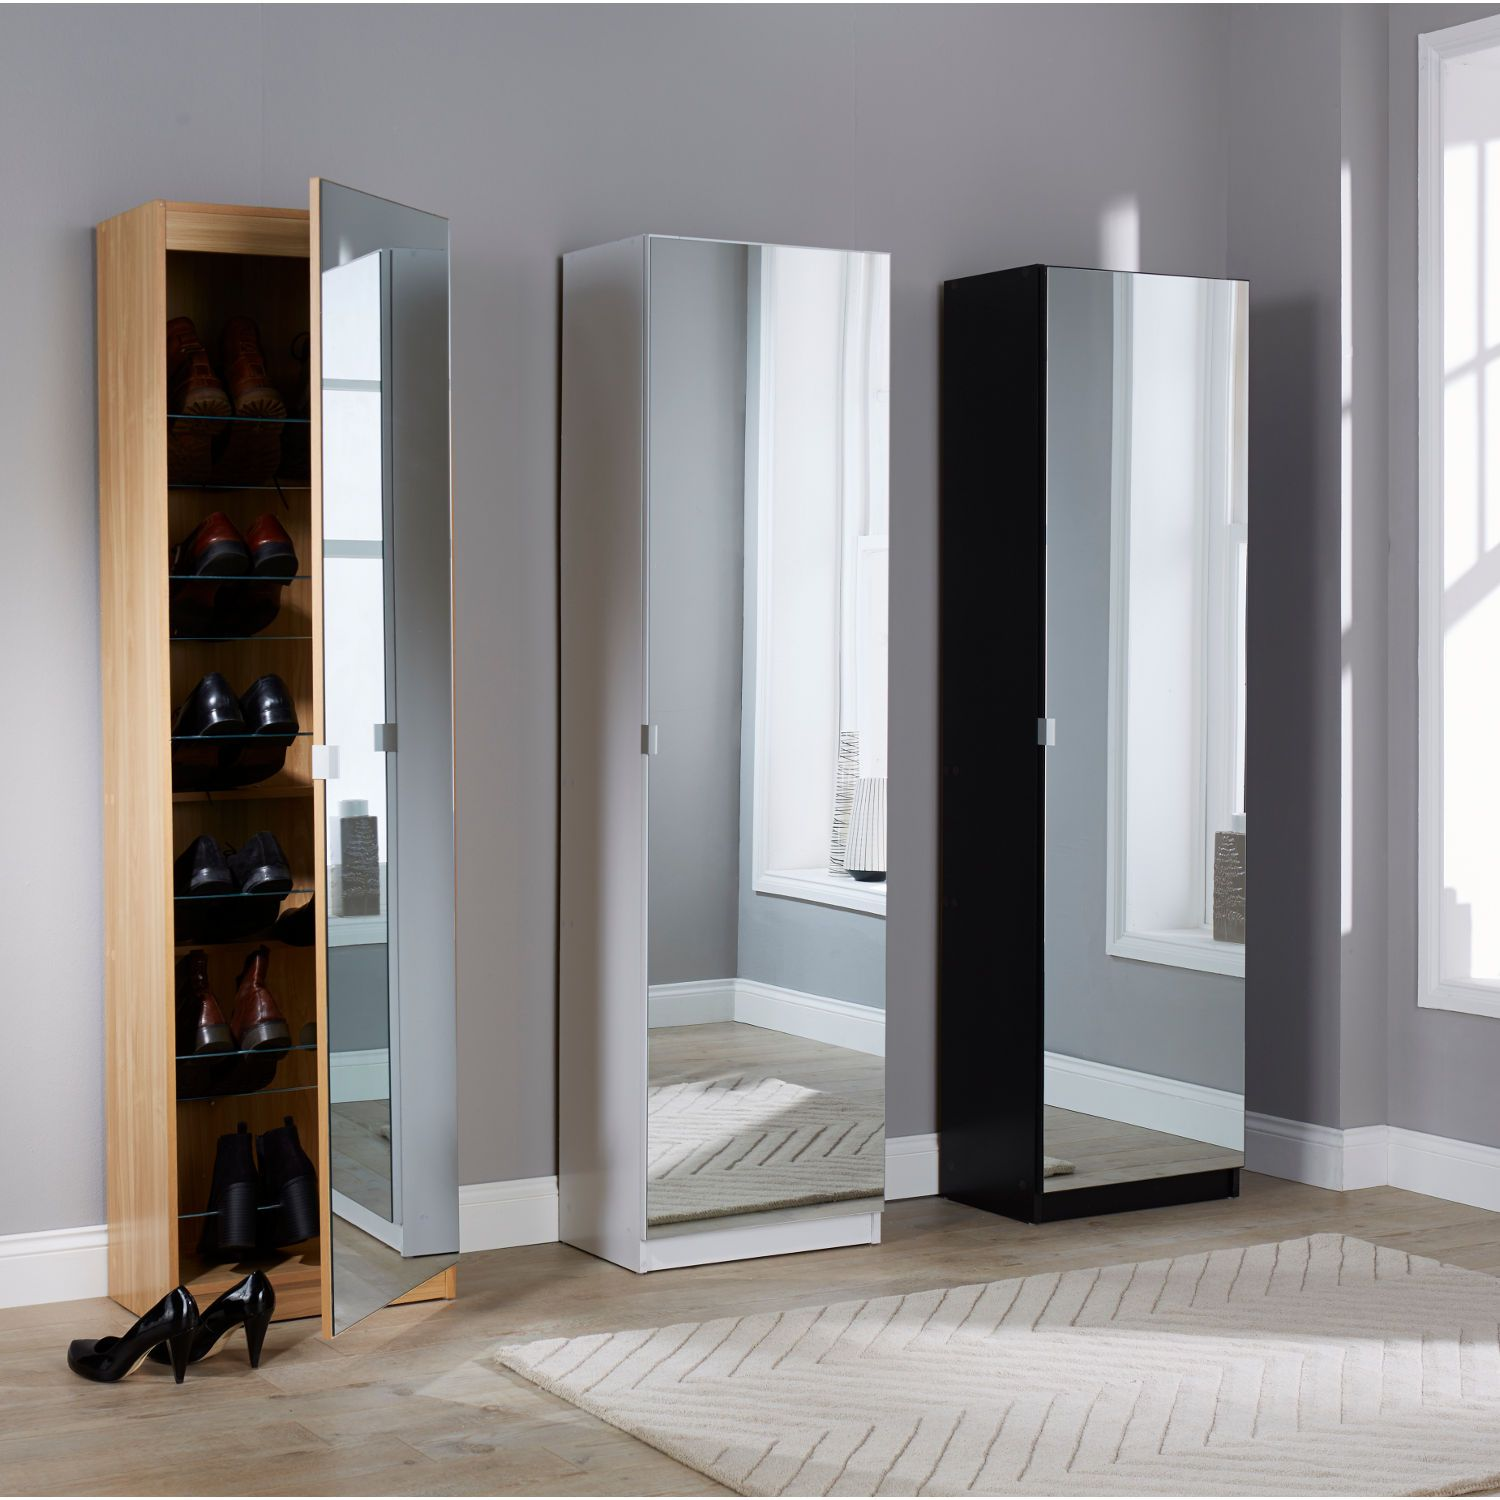 Full Length Mirror The Range Mirrored Shoe Cabinet In Black – Next Day Delivery